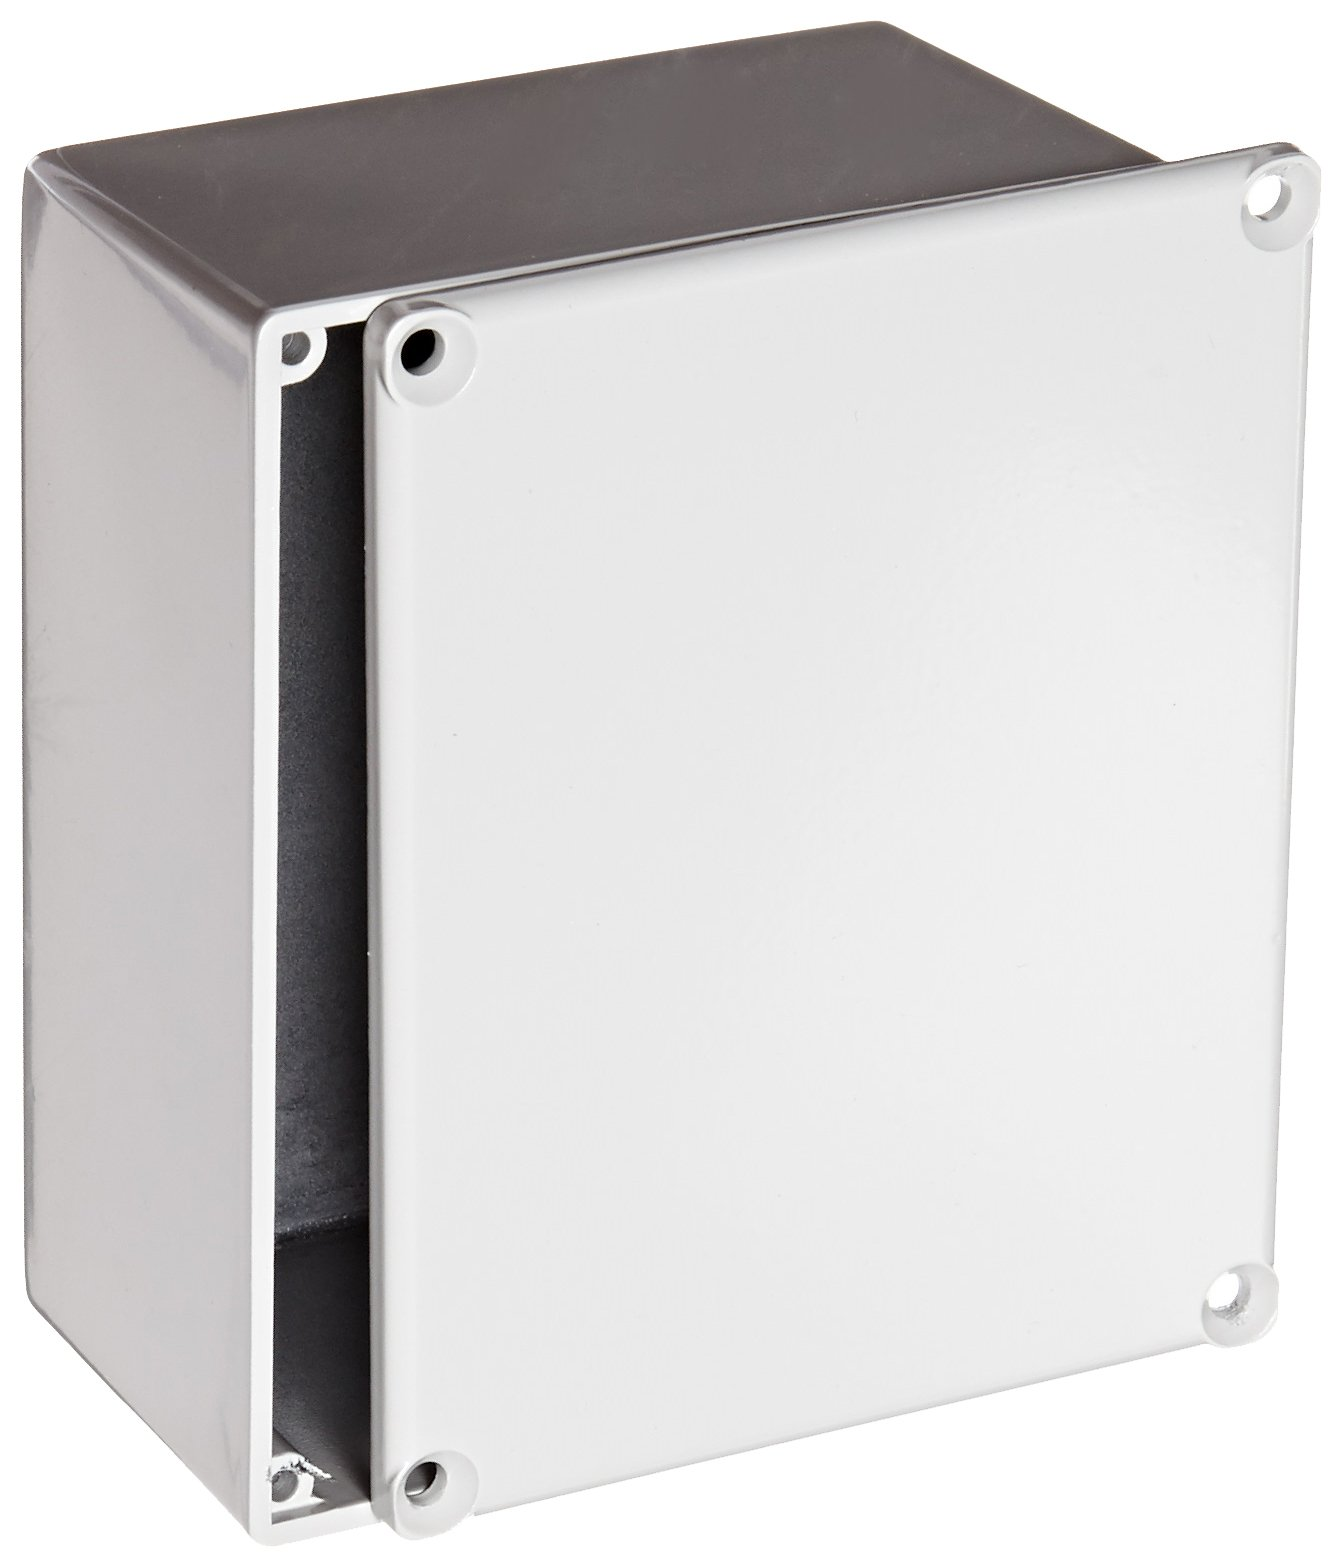 BUD Industries CU-234-G Aluminum Econobox, 4-43/64'' Length x 3-43/64'' Width x 2-13/64'' Height, Gray Painted Finish by BUD Industries (Image #1)